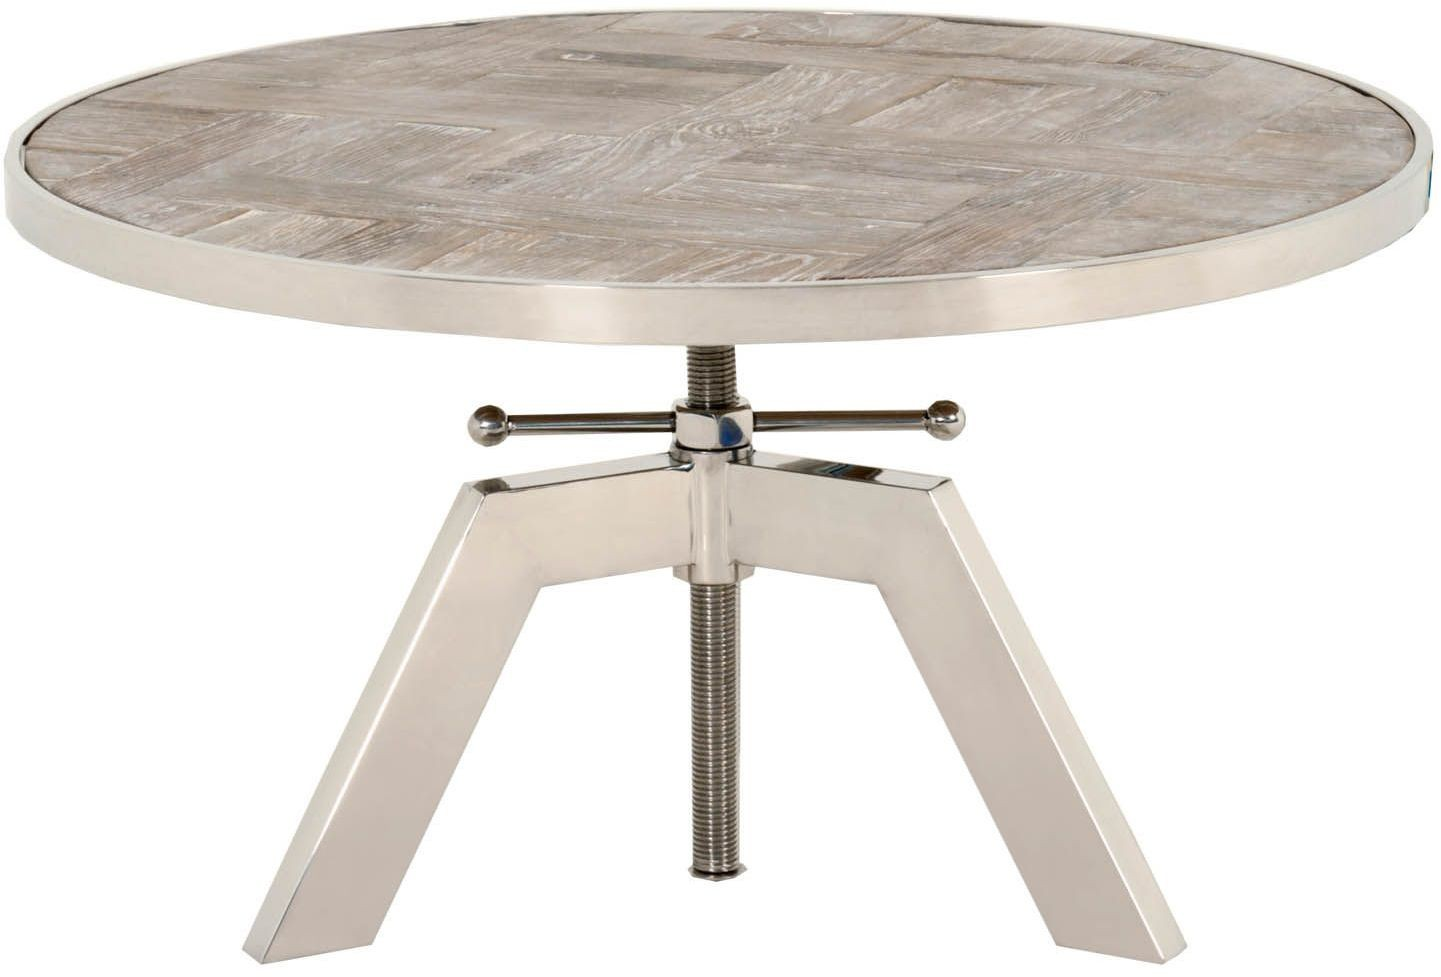 Charlie weathered round coffee table from orient express for Round weathered coffee table